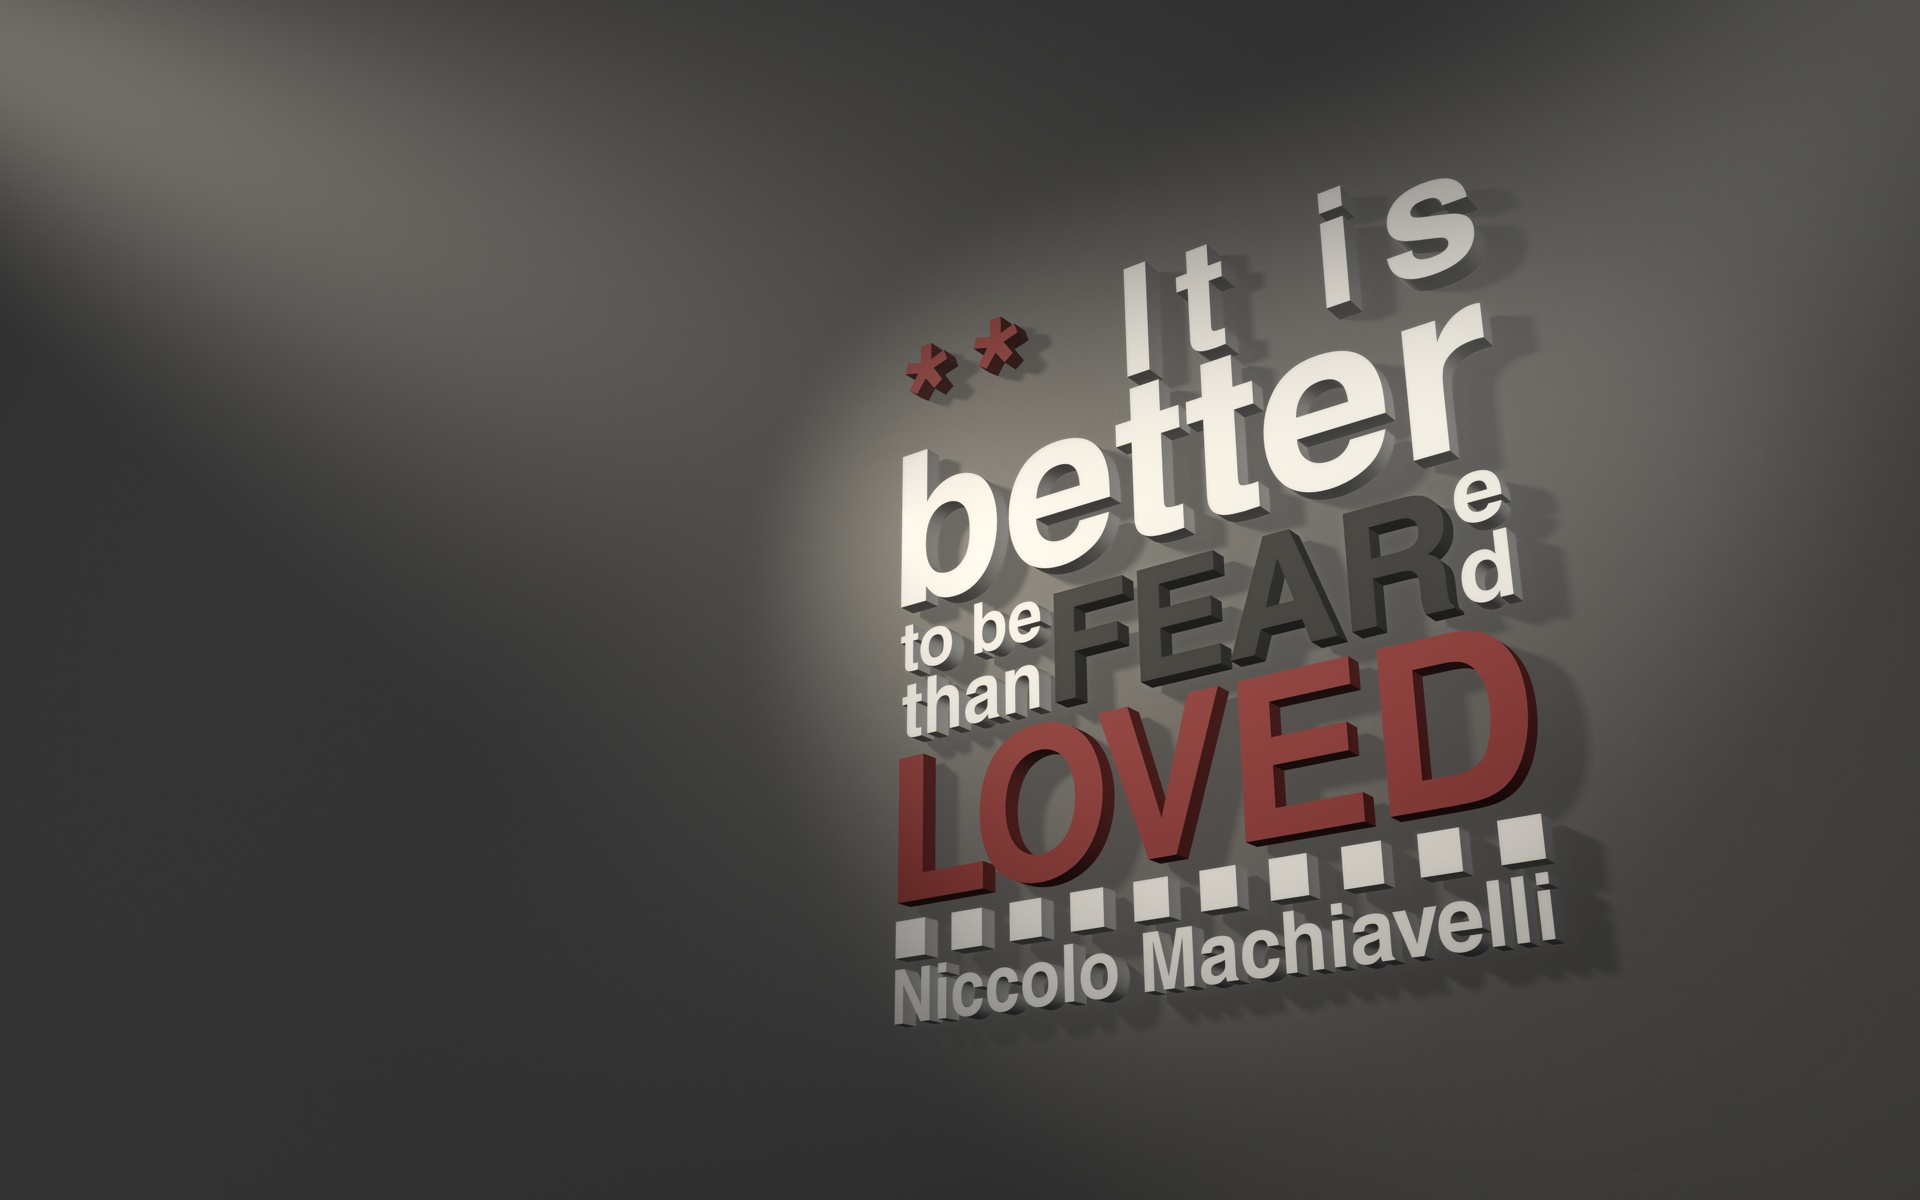 niccolo machiavelli quote by cr8g on niccolo machiavelli quote by cr8g niccolo machiavelli quote by cr8g